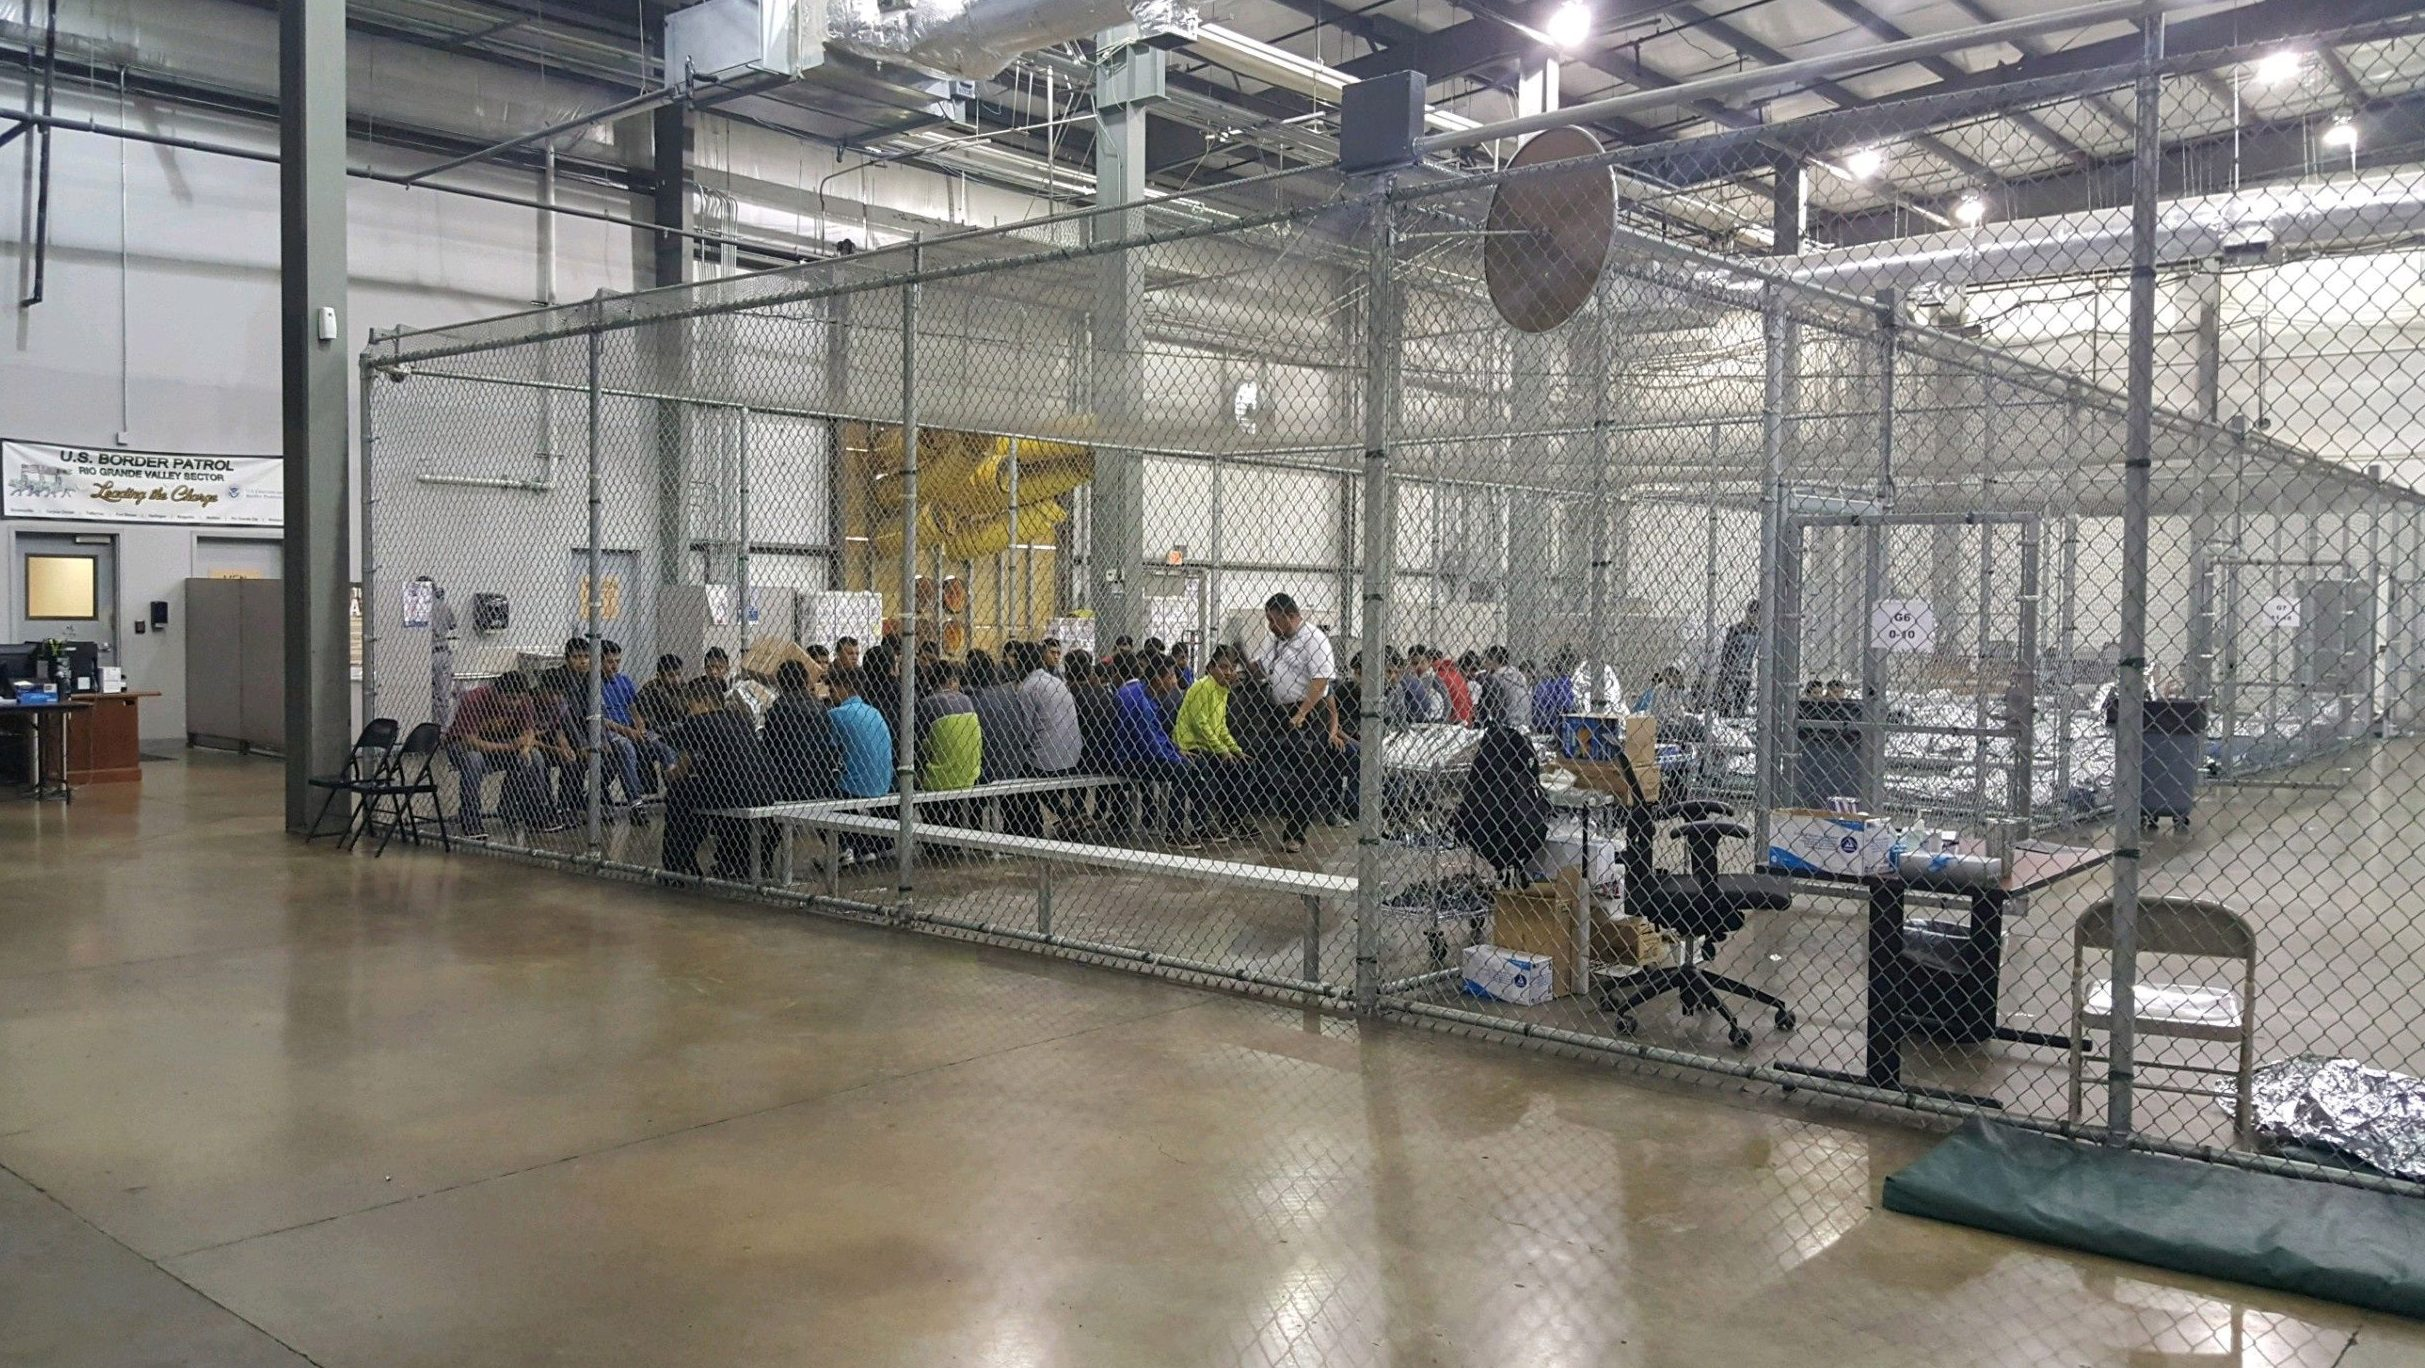 A view of inside U.S. Customs and Border Protection (CBP) detention facility shows detainees inside fenced areas at Rio Grande Valley Centralized Processing Center in Rio Grande City, Texas, U.S., June 17, 2018. Picture taken on June 17, 2018.   Courtesy CBP/Handout via REUTERS   ATTENTION EDITORS - THIS IMAGE HAS BEEN SUPPLIED BY A THIRD PARTY. - RC180F6BB600